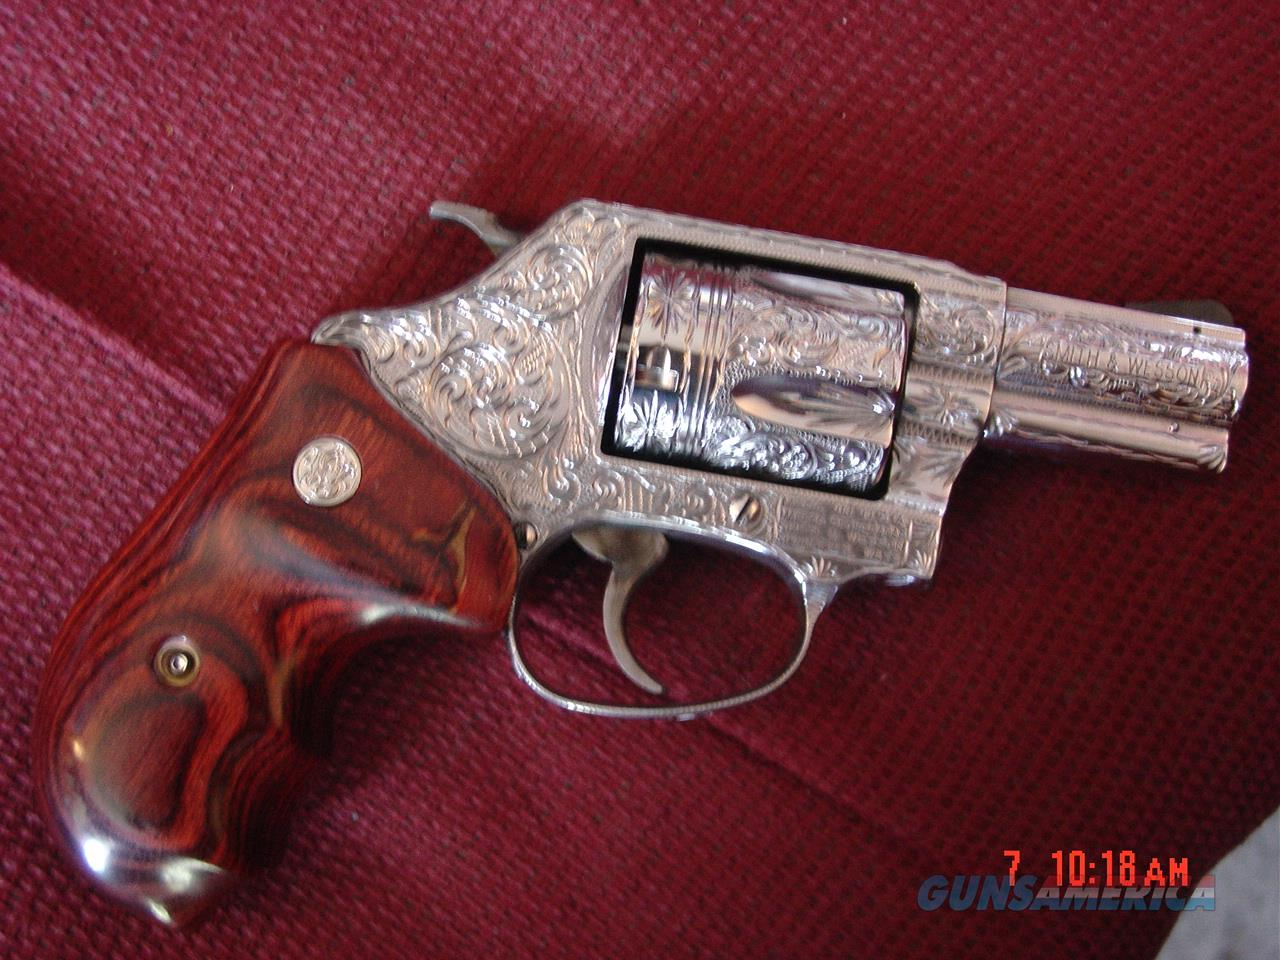 "Smith & Wesson 60-14,357 mag,2.125"" barrel,fully deep hand engraved & polished by Flannery engraving,rosewood grips,never fired,box & papers-awesome showpiece !!  Guns > Pistols > Smith & Wesson Revolvers > Small Frame ( J )"